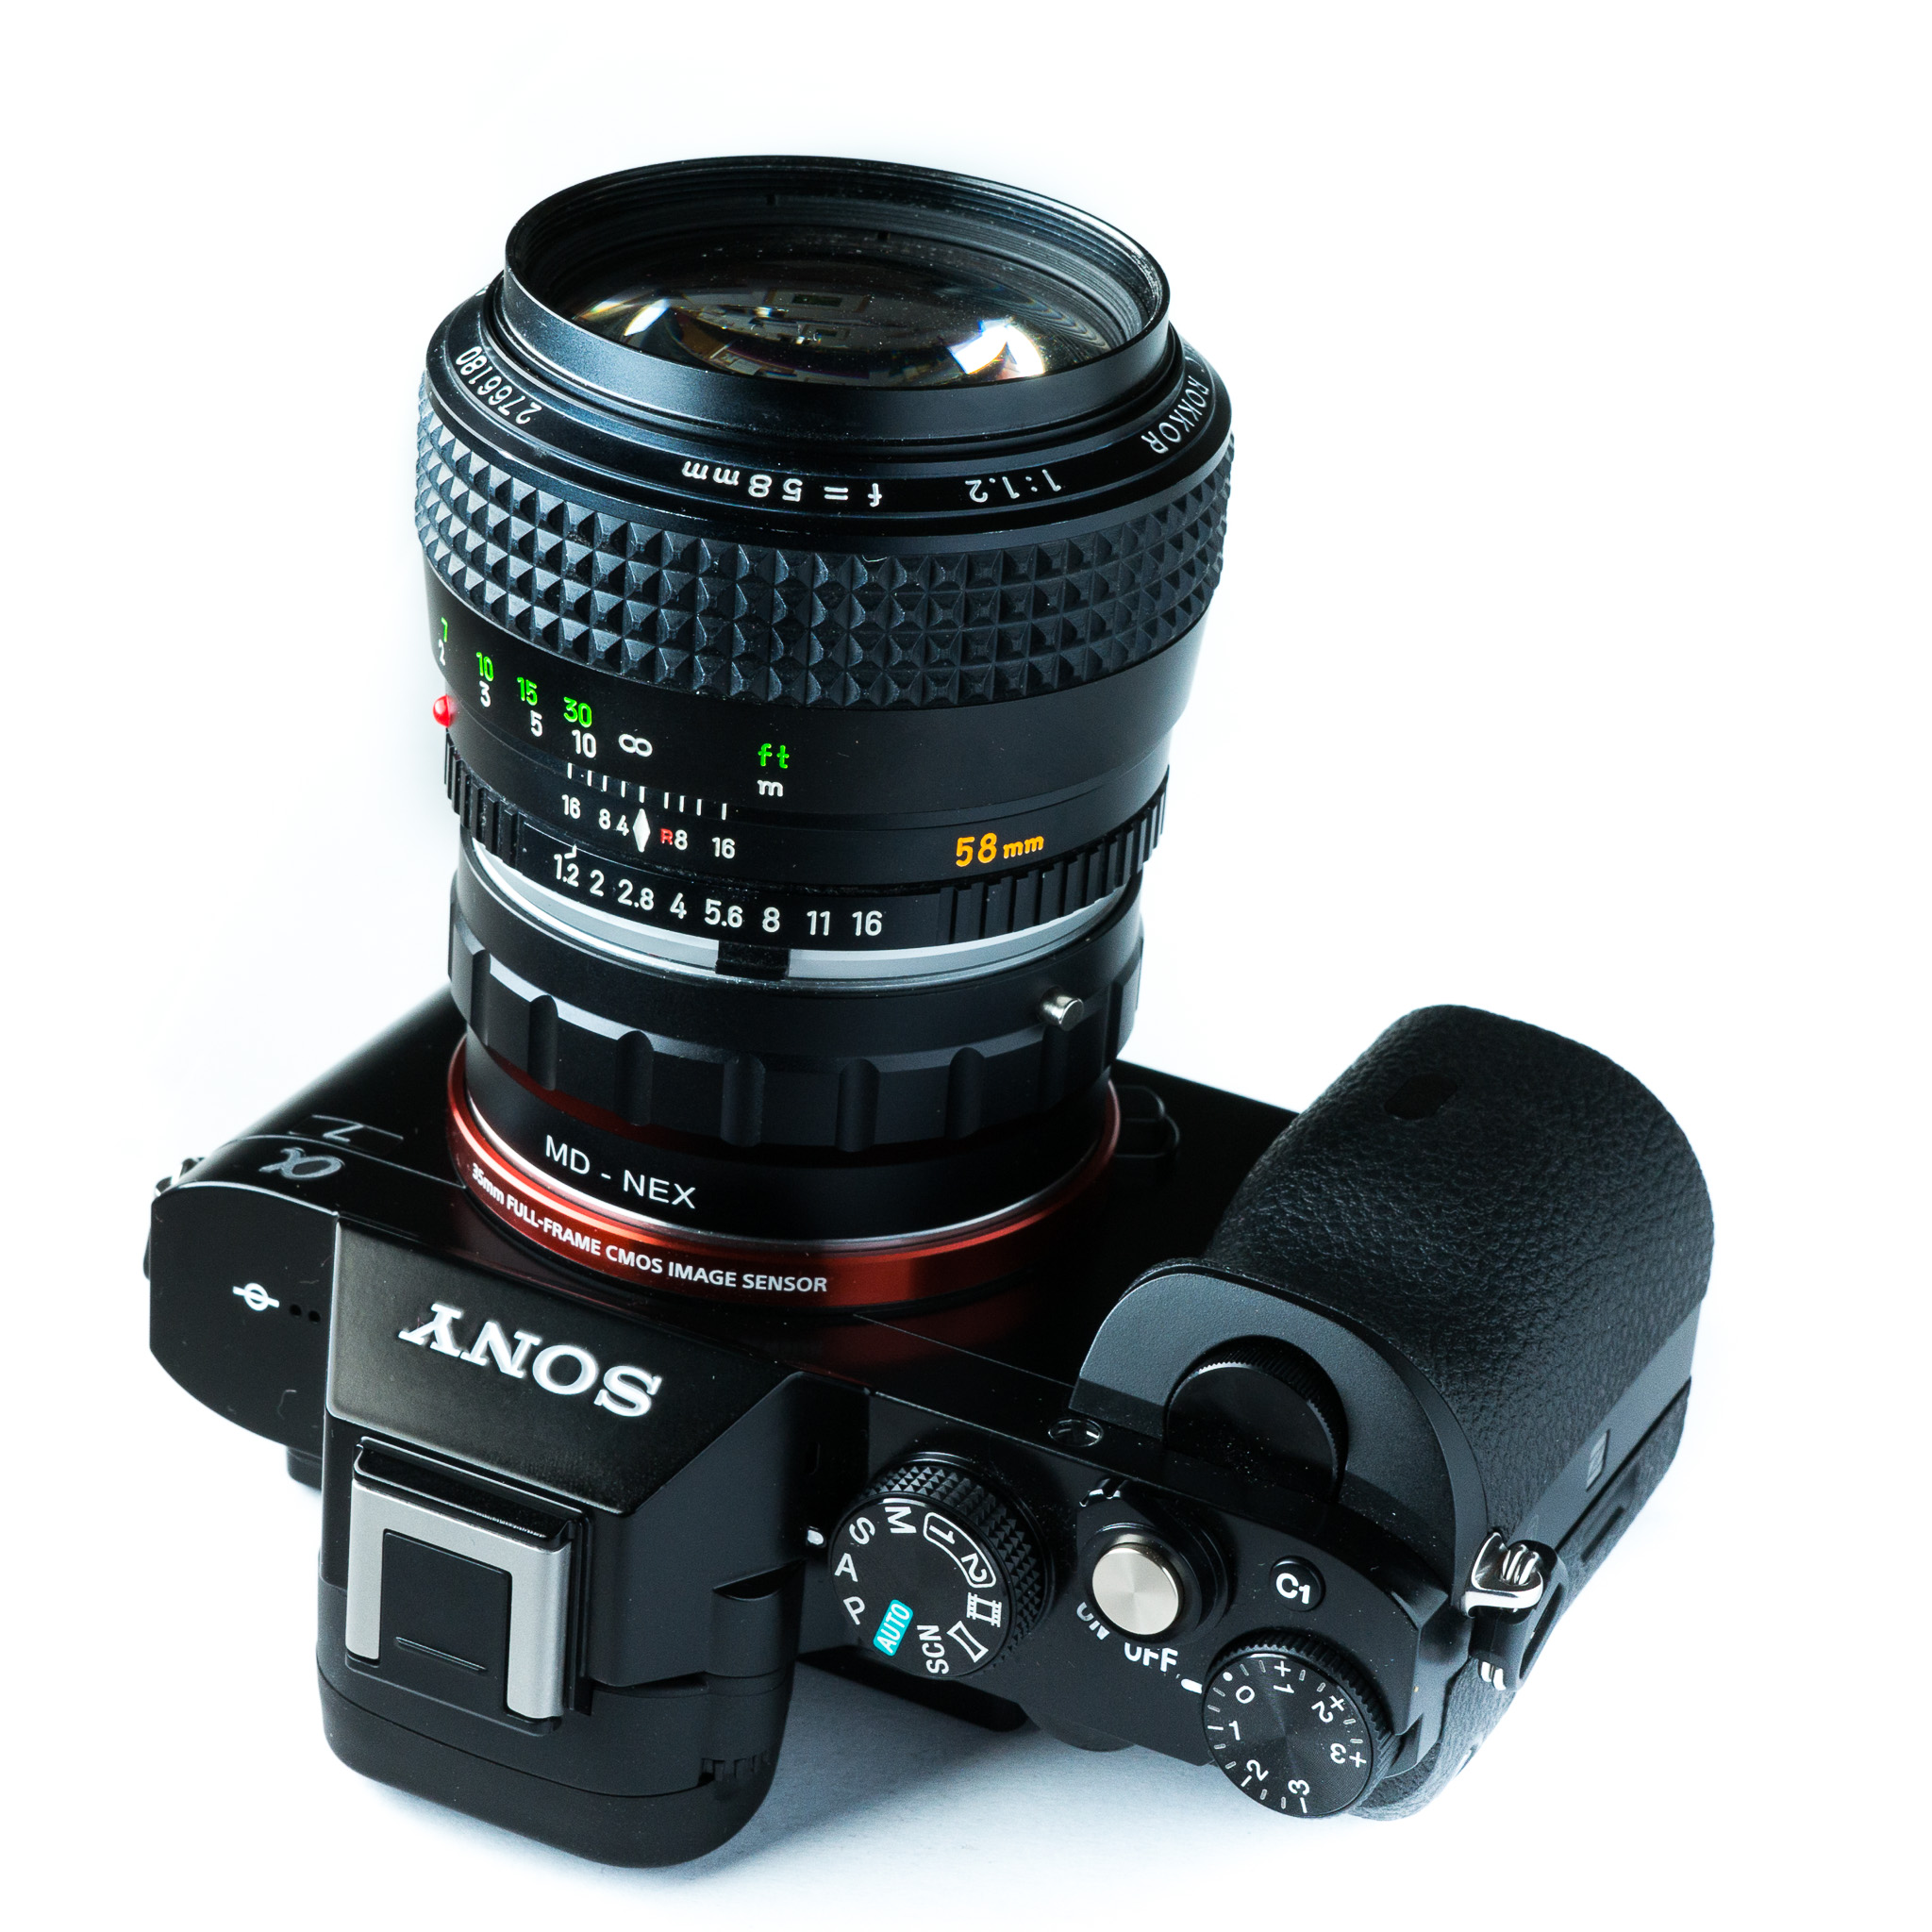 working with the sony alpha 7 tips and tricks rh phillipreeve net Camera Lenses for Sony Alpha Sony Alpha Minolta Lens